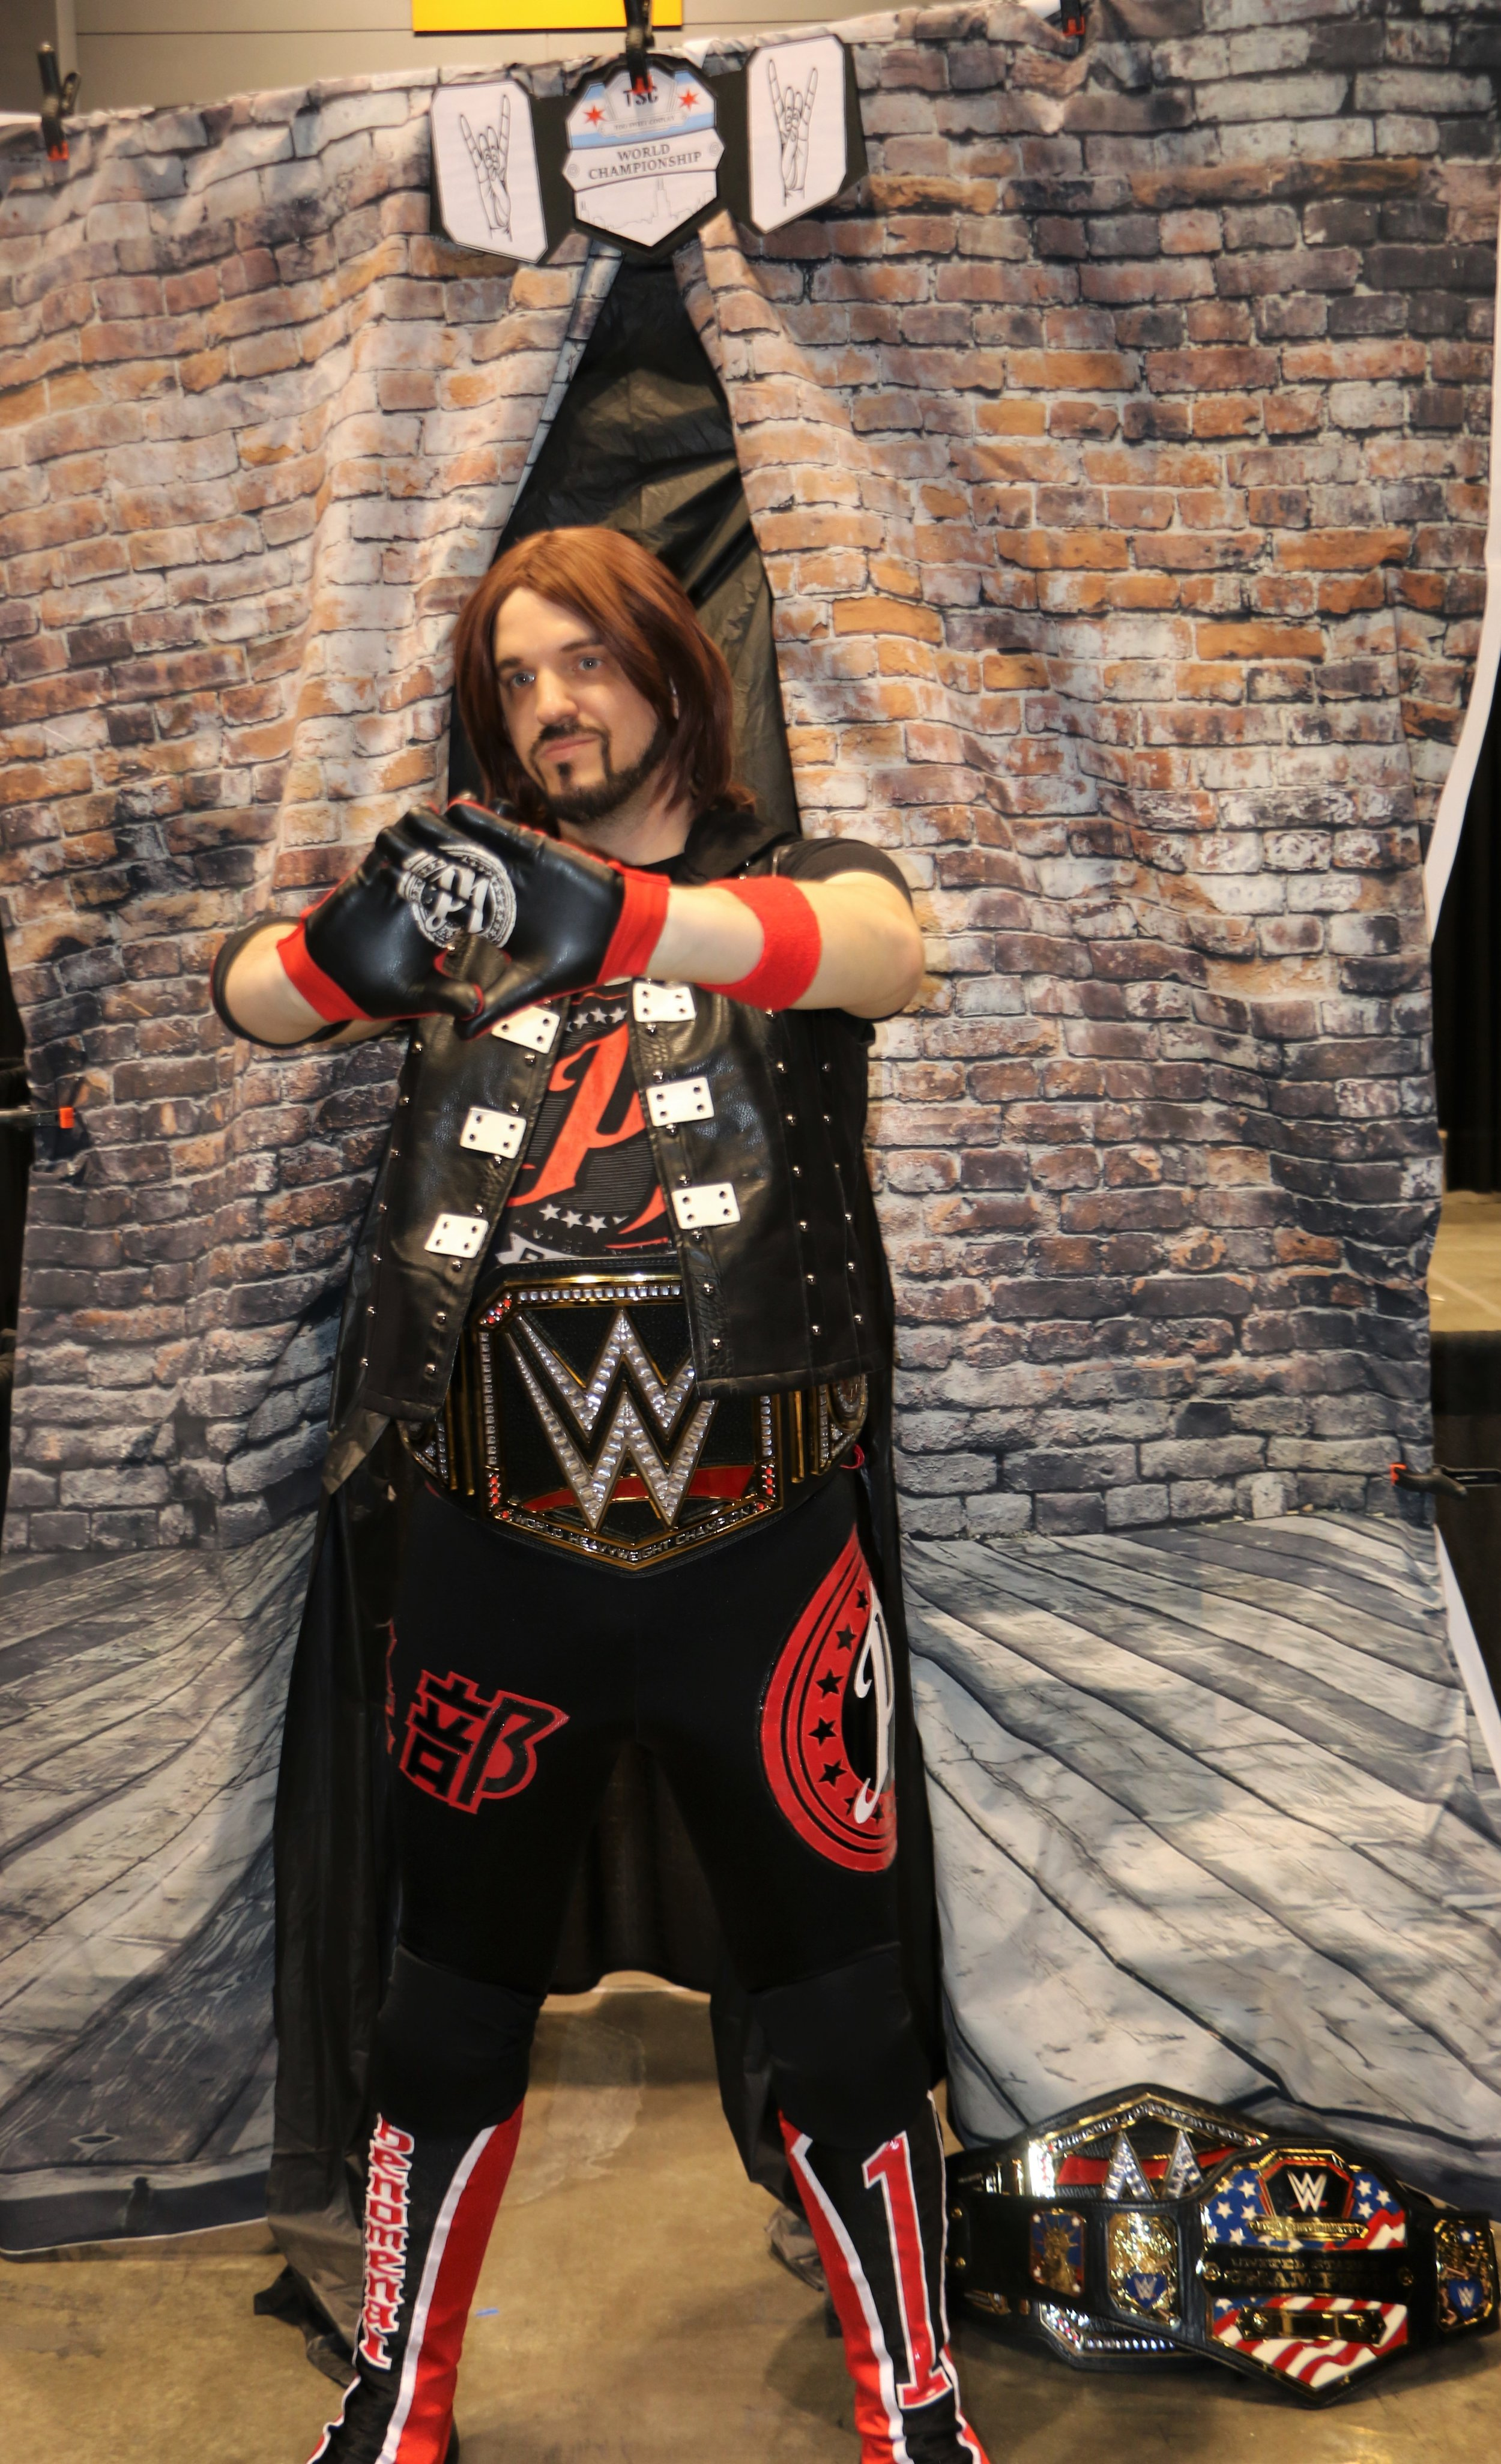 AJ Styles cosplayer at the Two Sweet Cosplay booth.